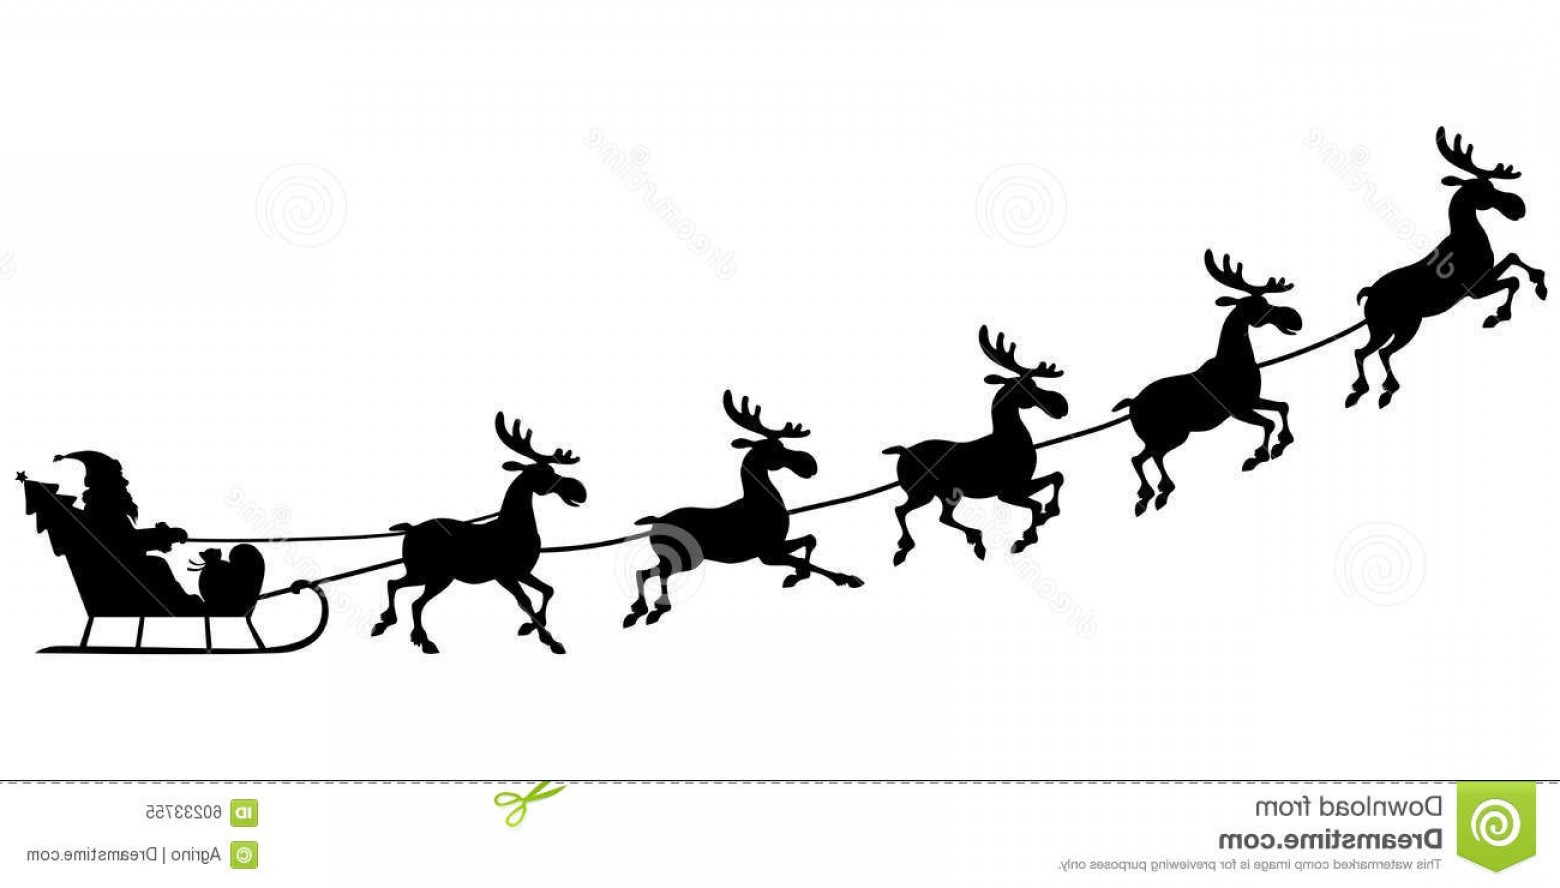 Black Santa Sleigh Vector: Stock Illustration Silhouette Santa Riding Reindeer Sleigh Vector Illustrations Claus Sitting Who Pull Image